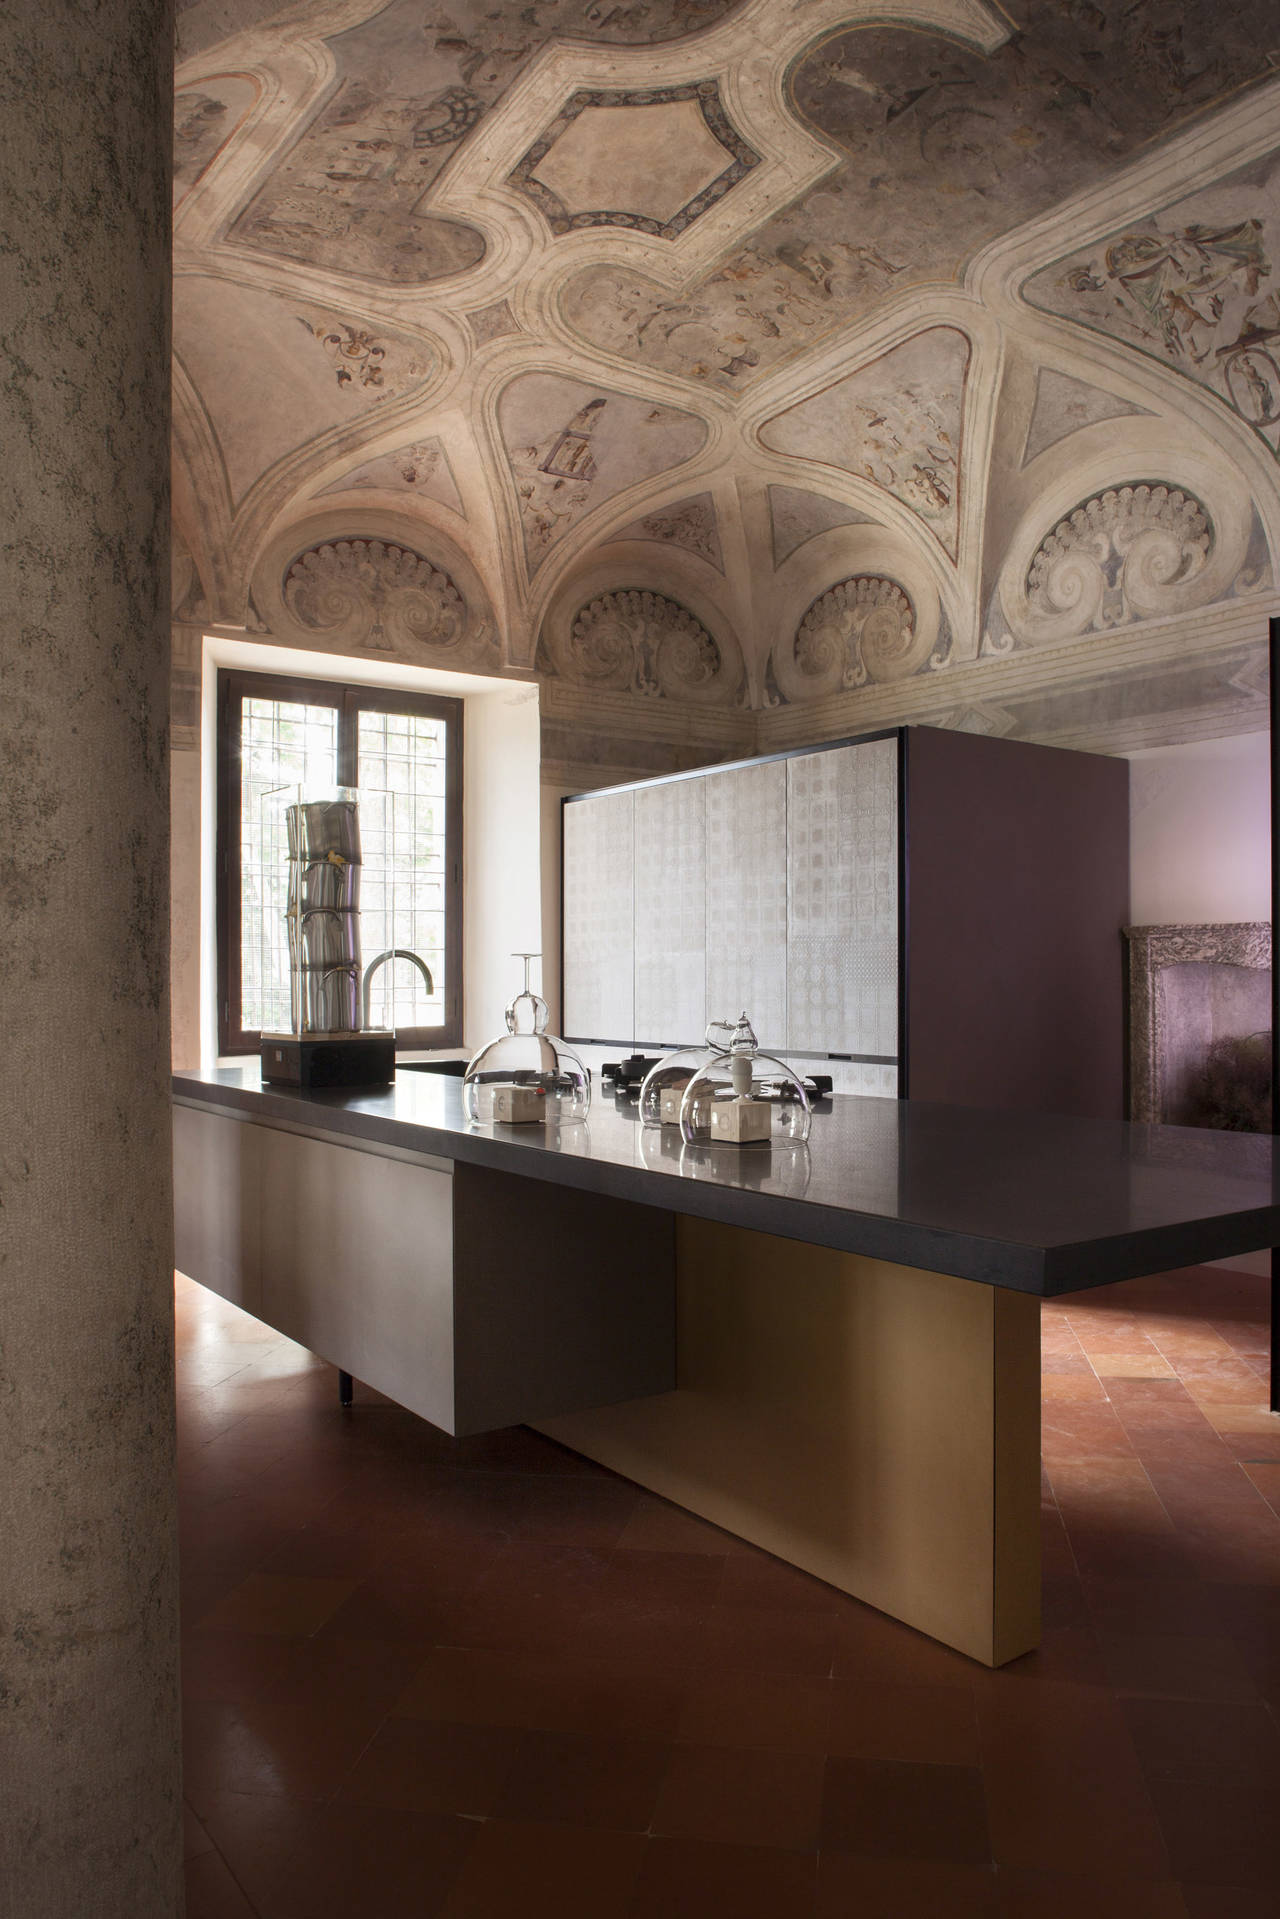 Cucina Estivale by Benedini Associati per Key Cucine (Photo by Albumstudio)